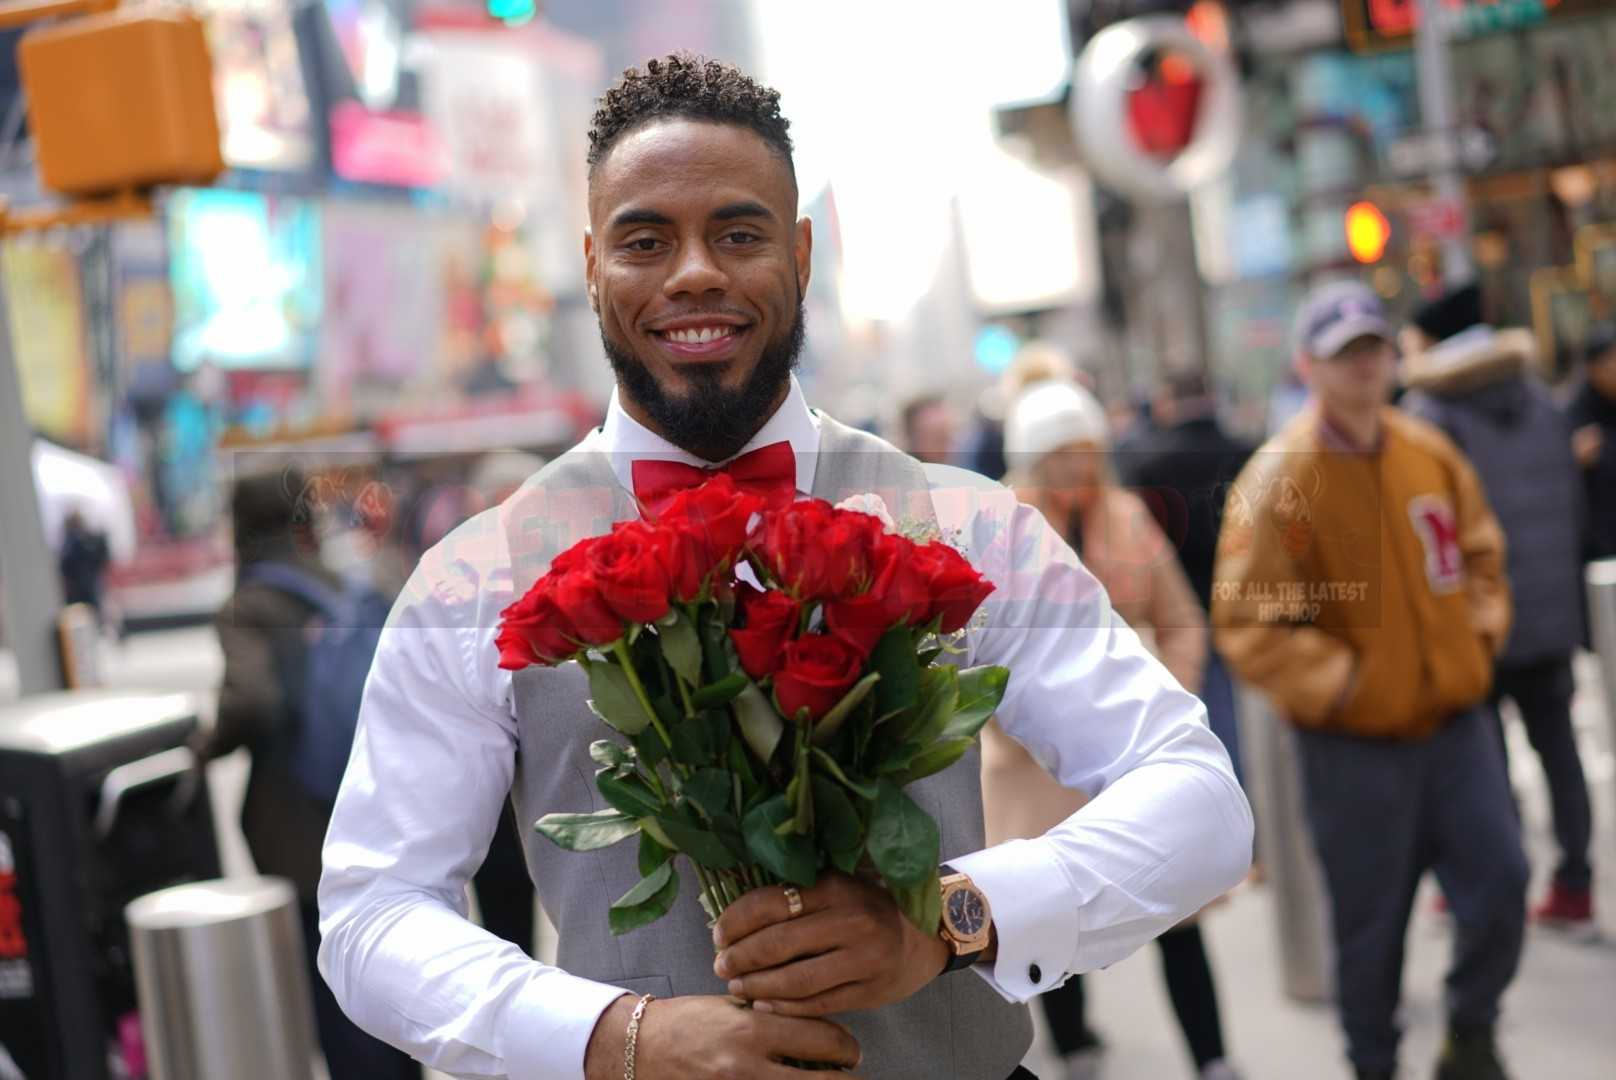 NFL Star Rashad Jennings Teams up with 1-800-Flowers to Surprise New Yorkers for Valentine's Day!